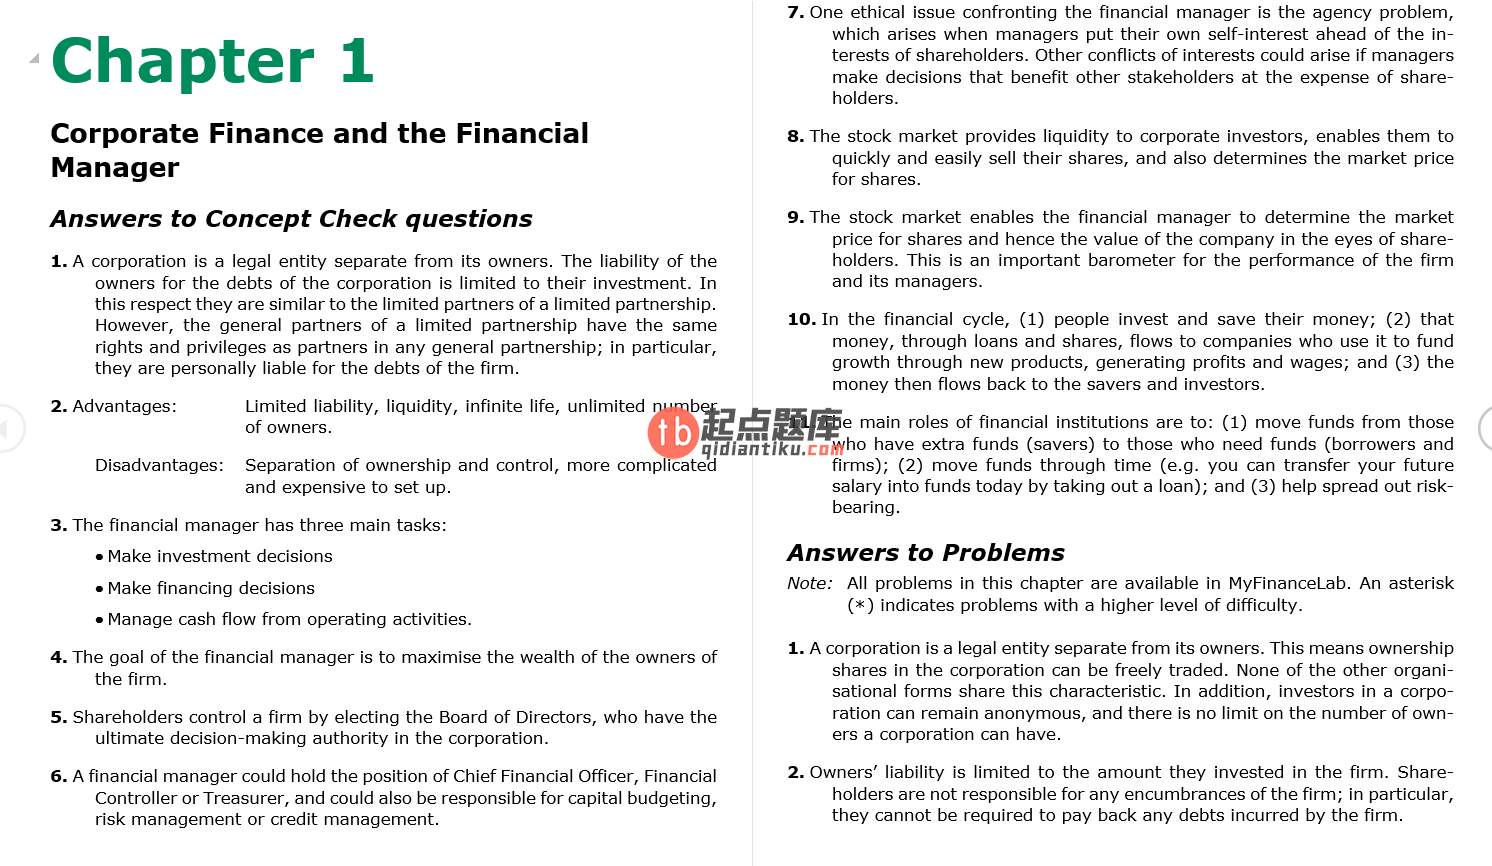 solution manual for Fundamentals of Corporate Finance 2nd Australian Edition的图片 4